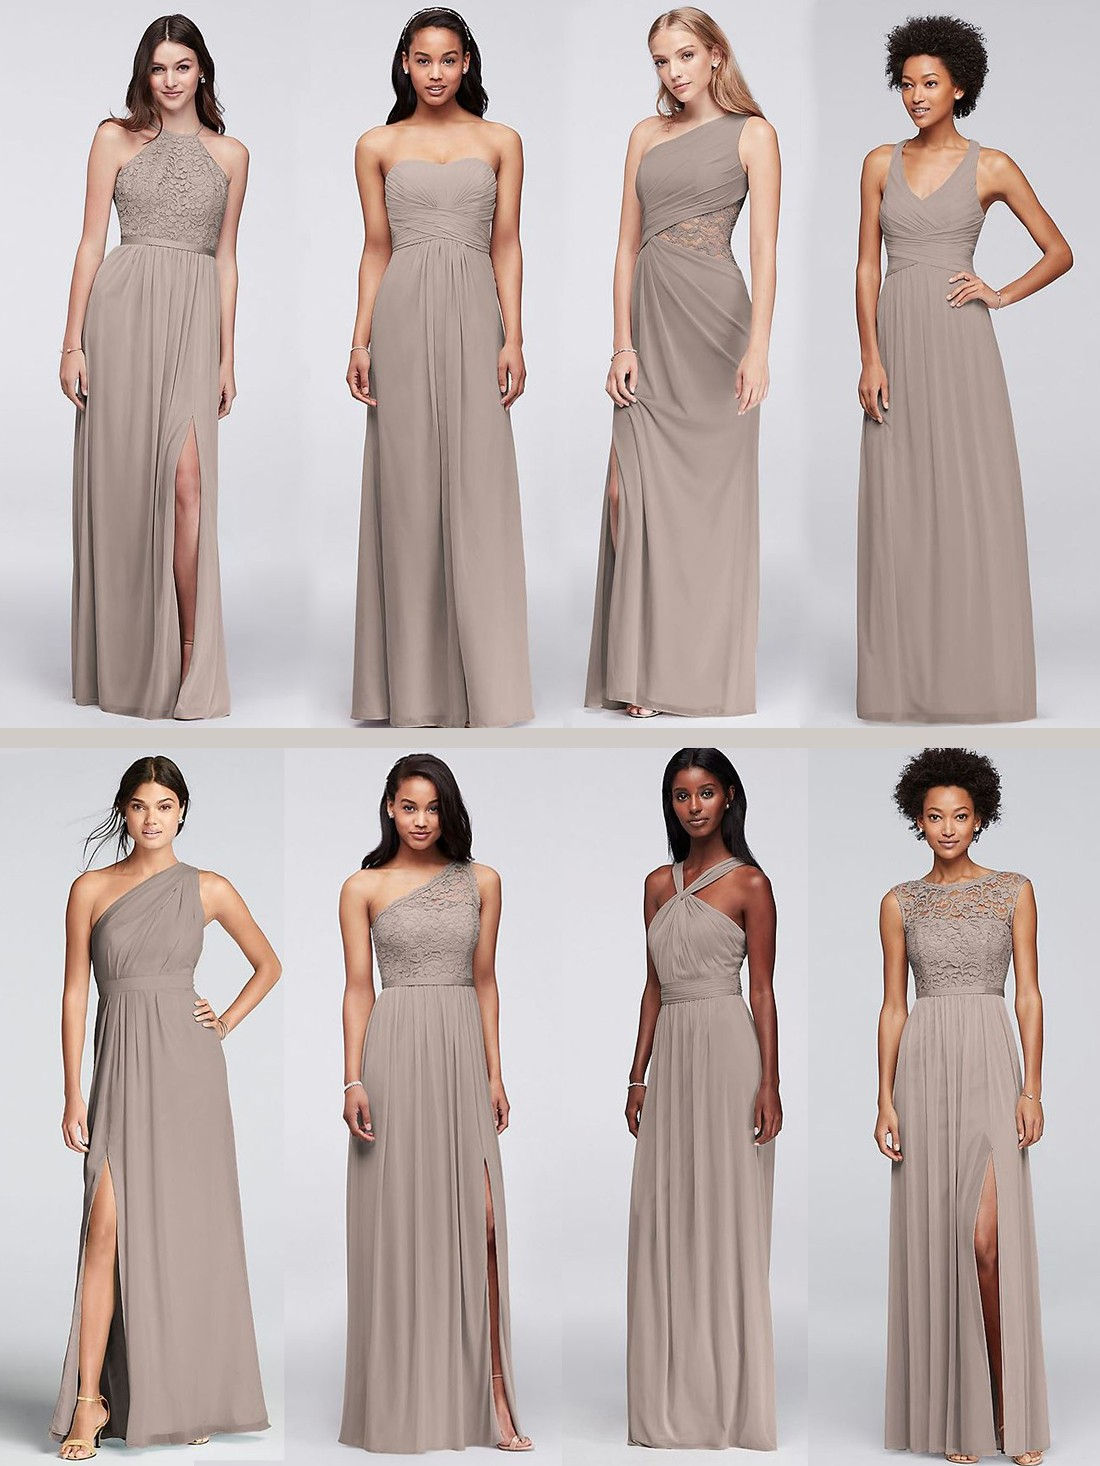 David\'s Bridal Mix and Match Bridesmaids Dresses | Bride Guide